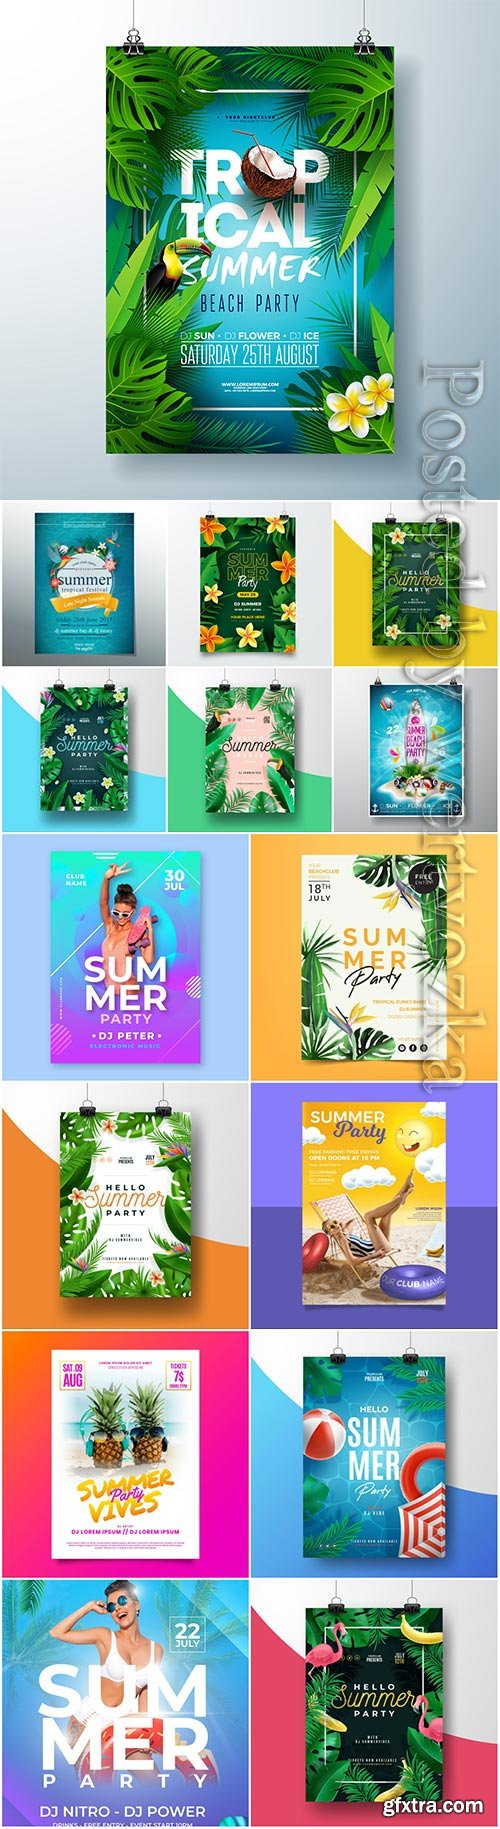 Summer party poster vector template